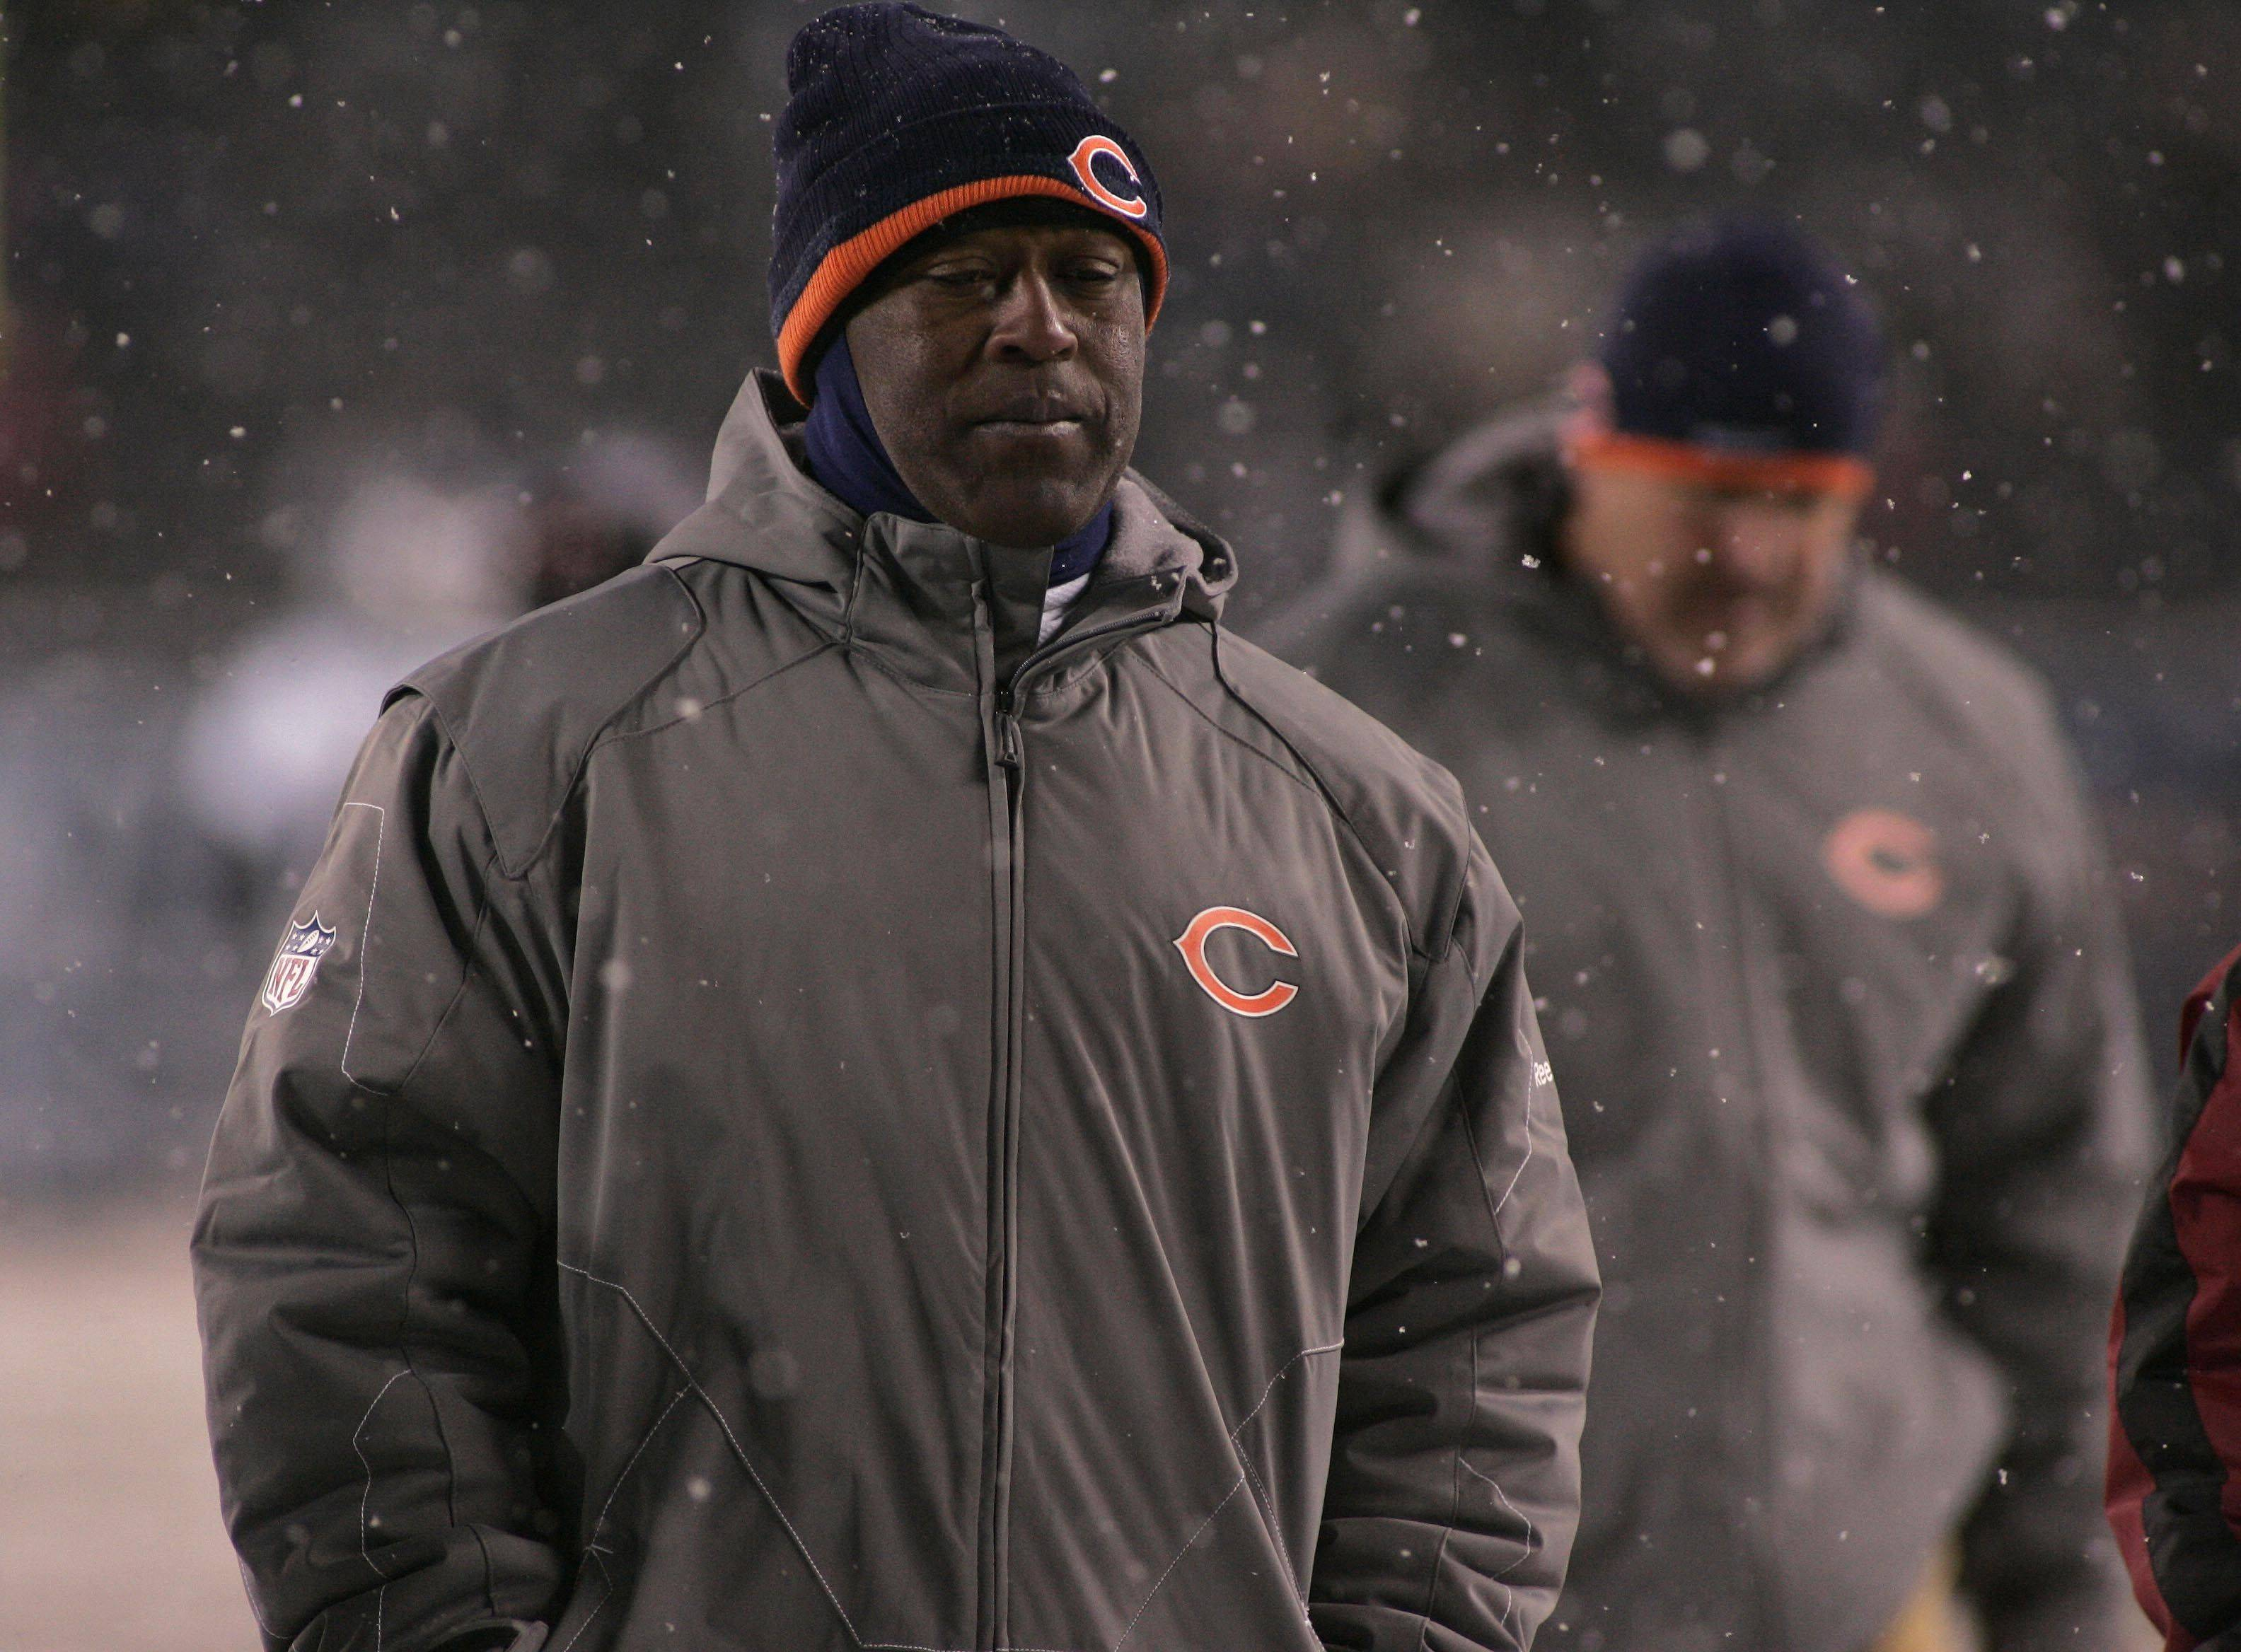 Chicago Bears coach Lovie Smith walks off the field after the Bears loss to the Patriots.